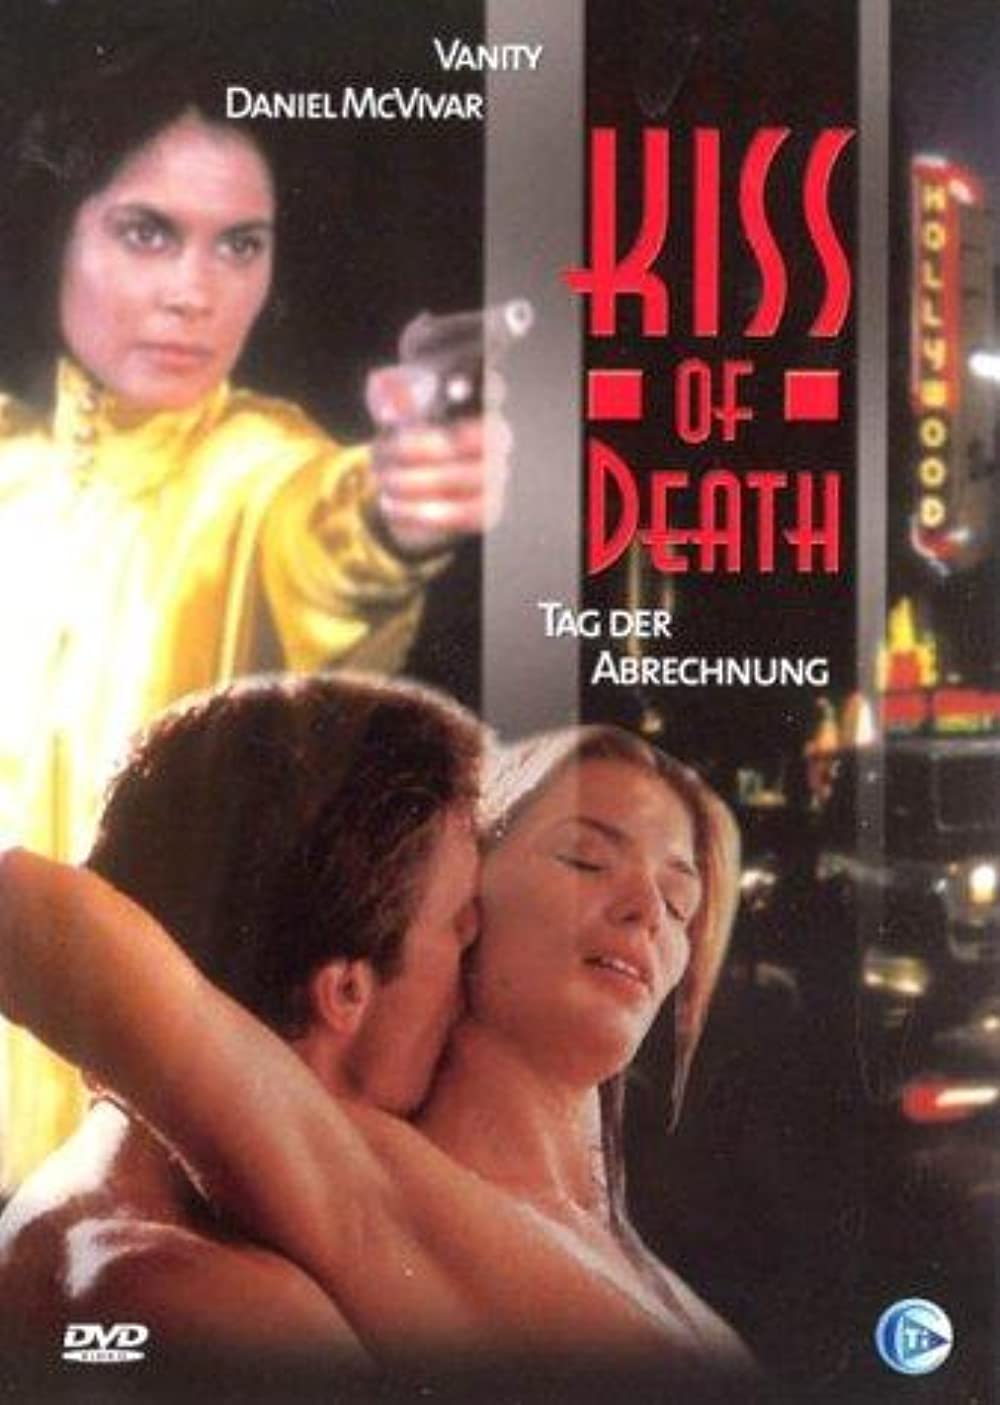 18+ Kiss of Death 1997 Hindi Dual Audio 302MB UNRATED DVDRip Download